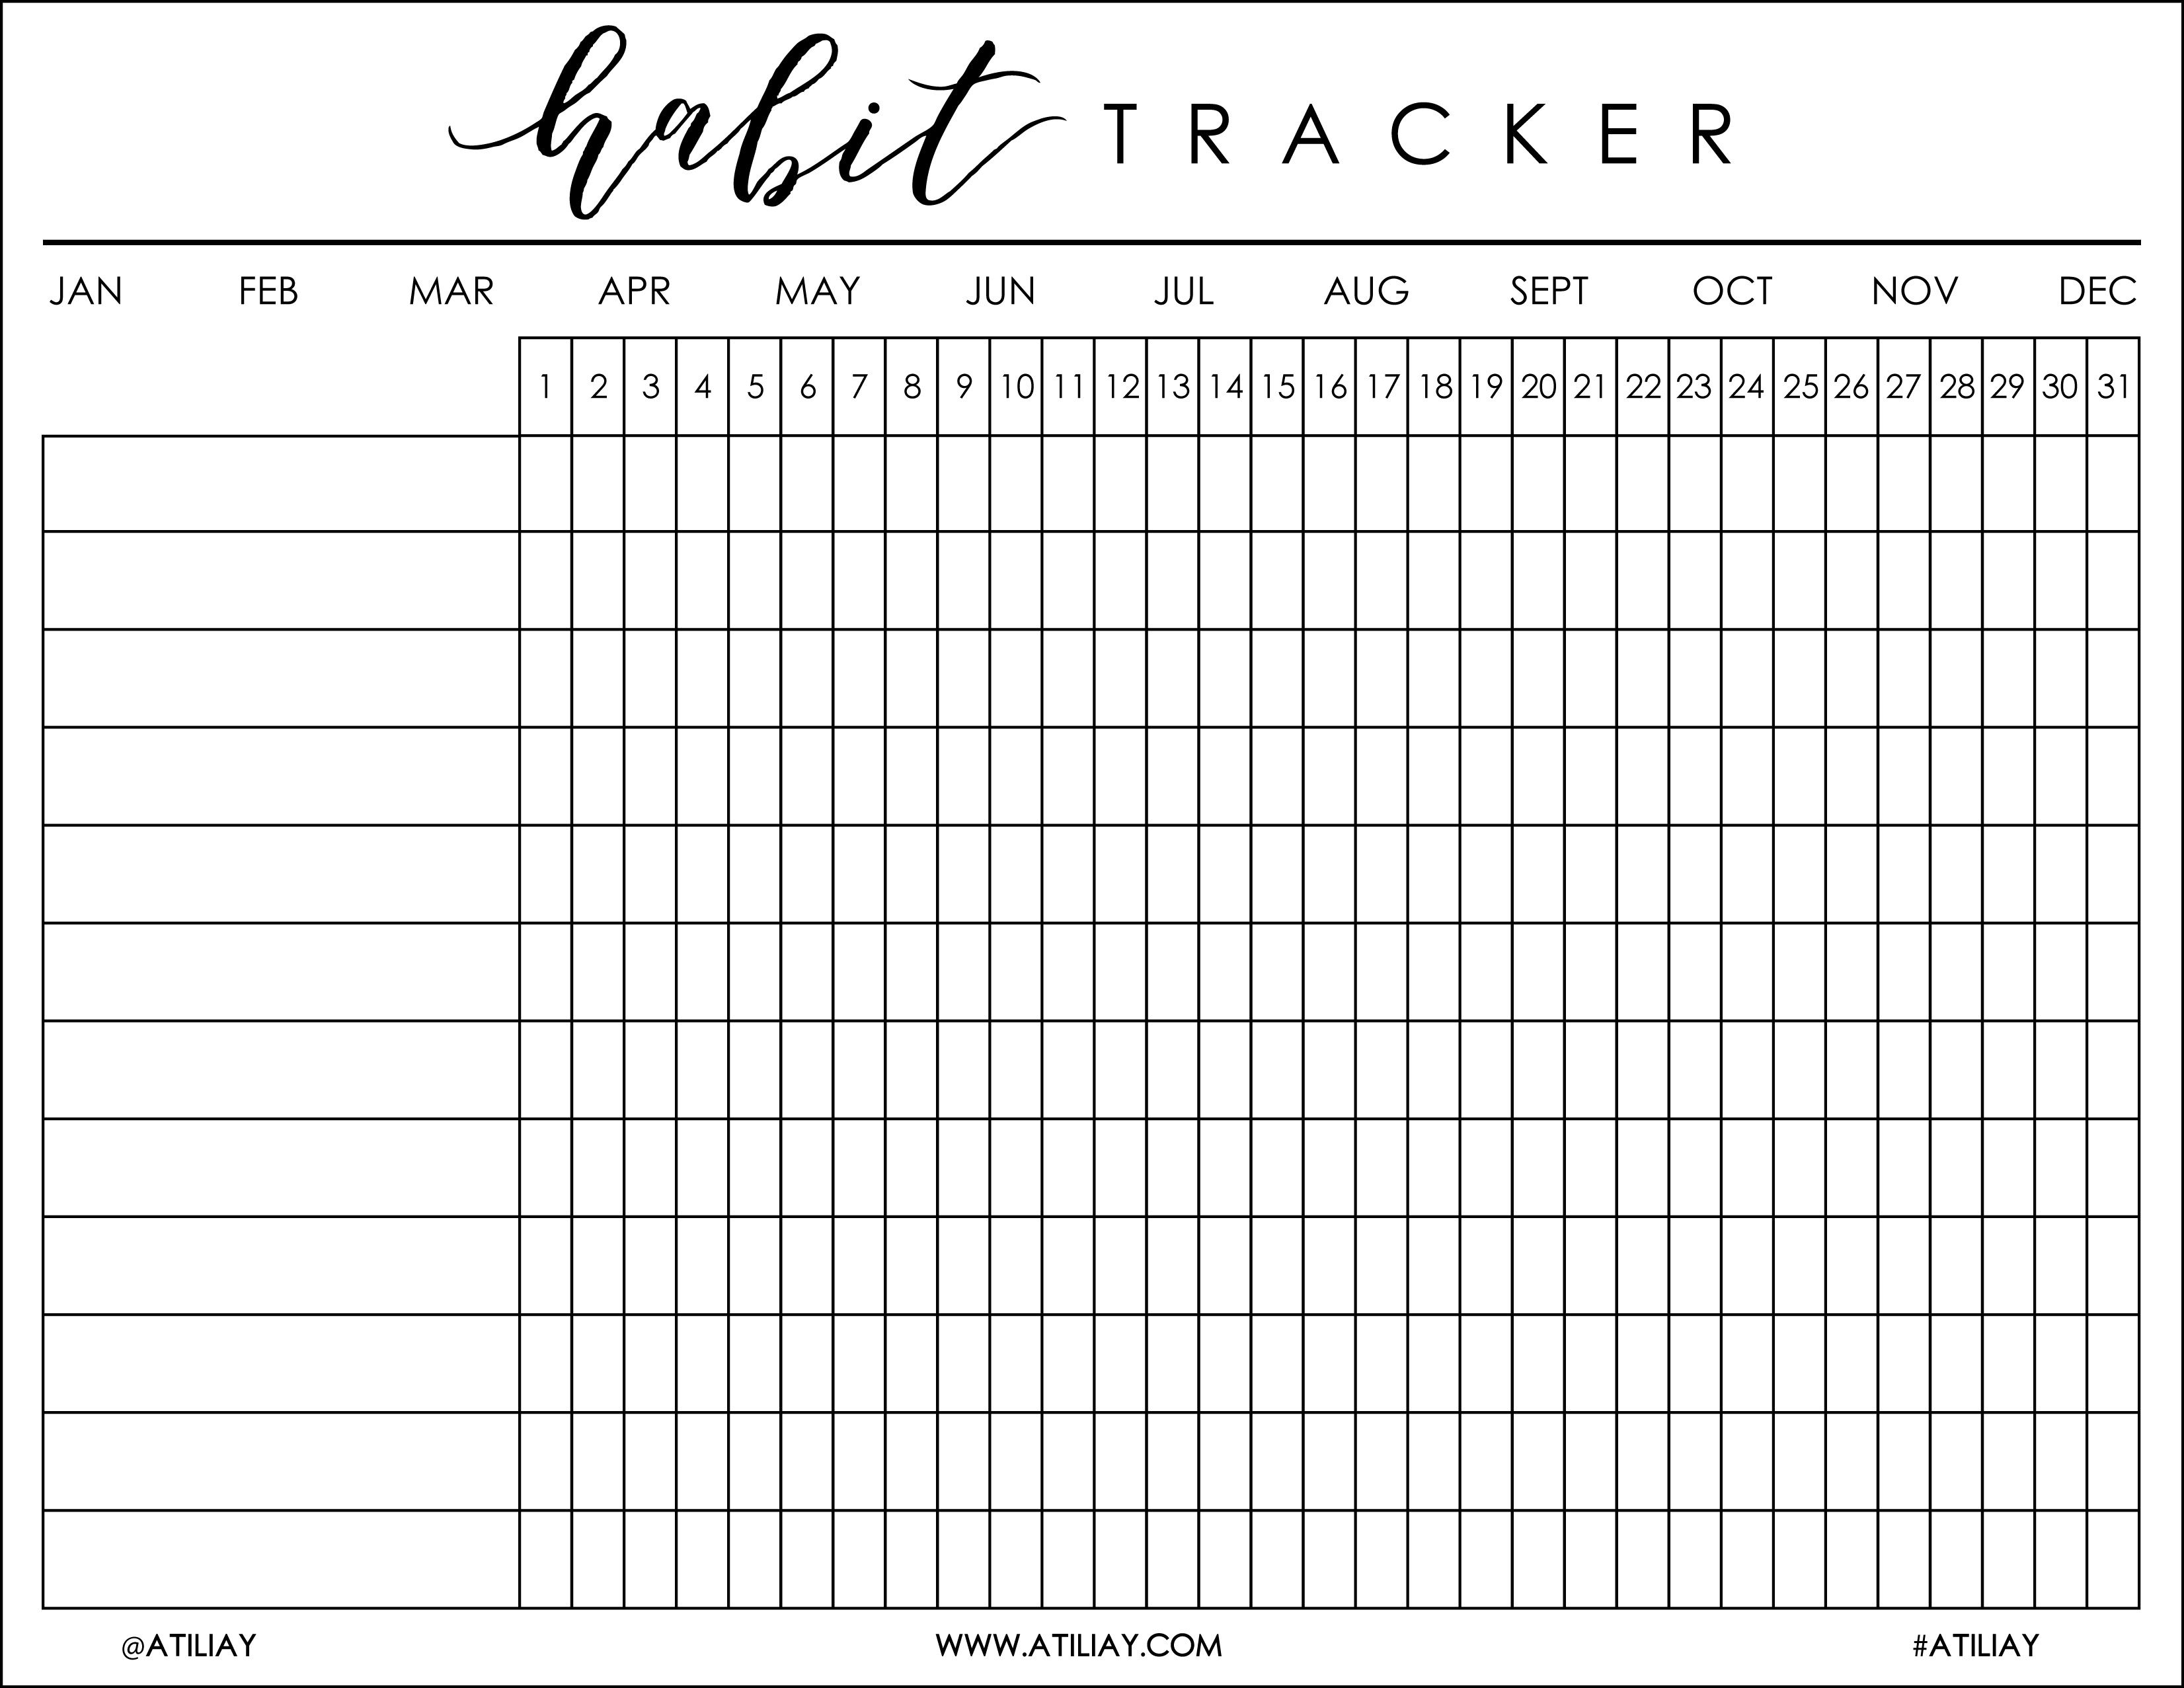 Refreshing image intended for habit tracker free printable